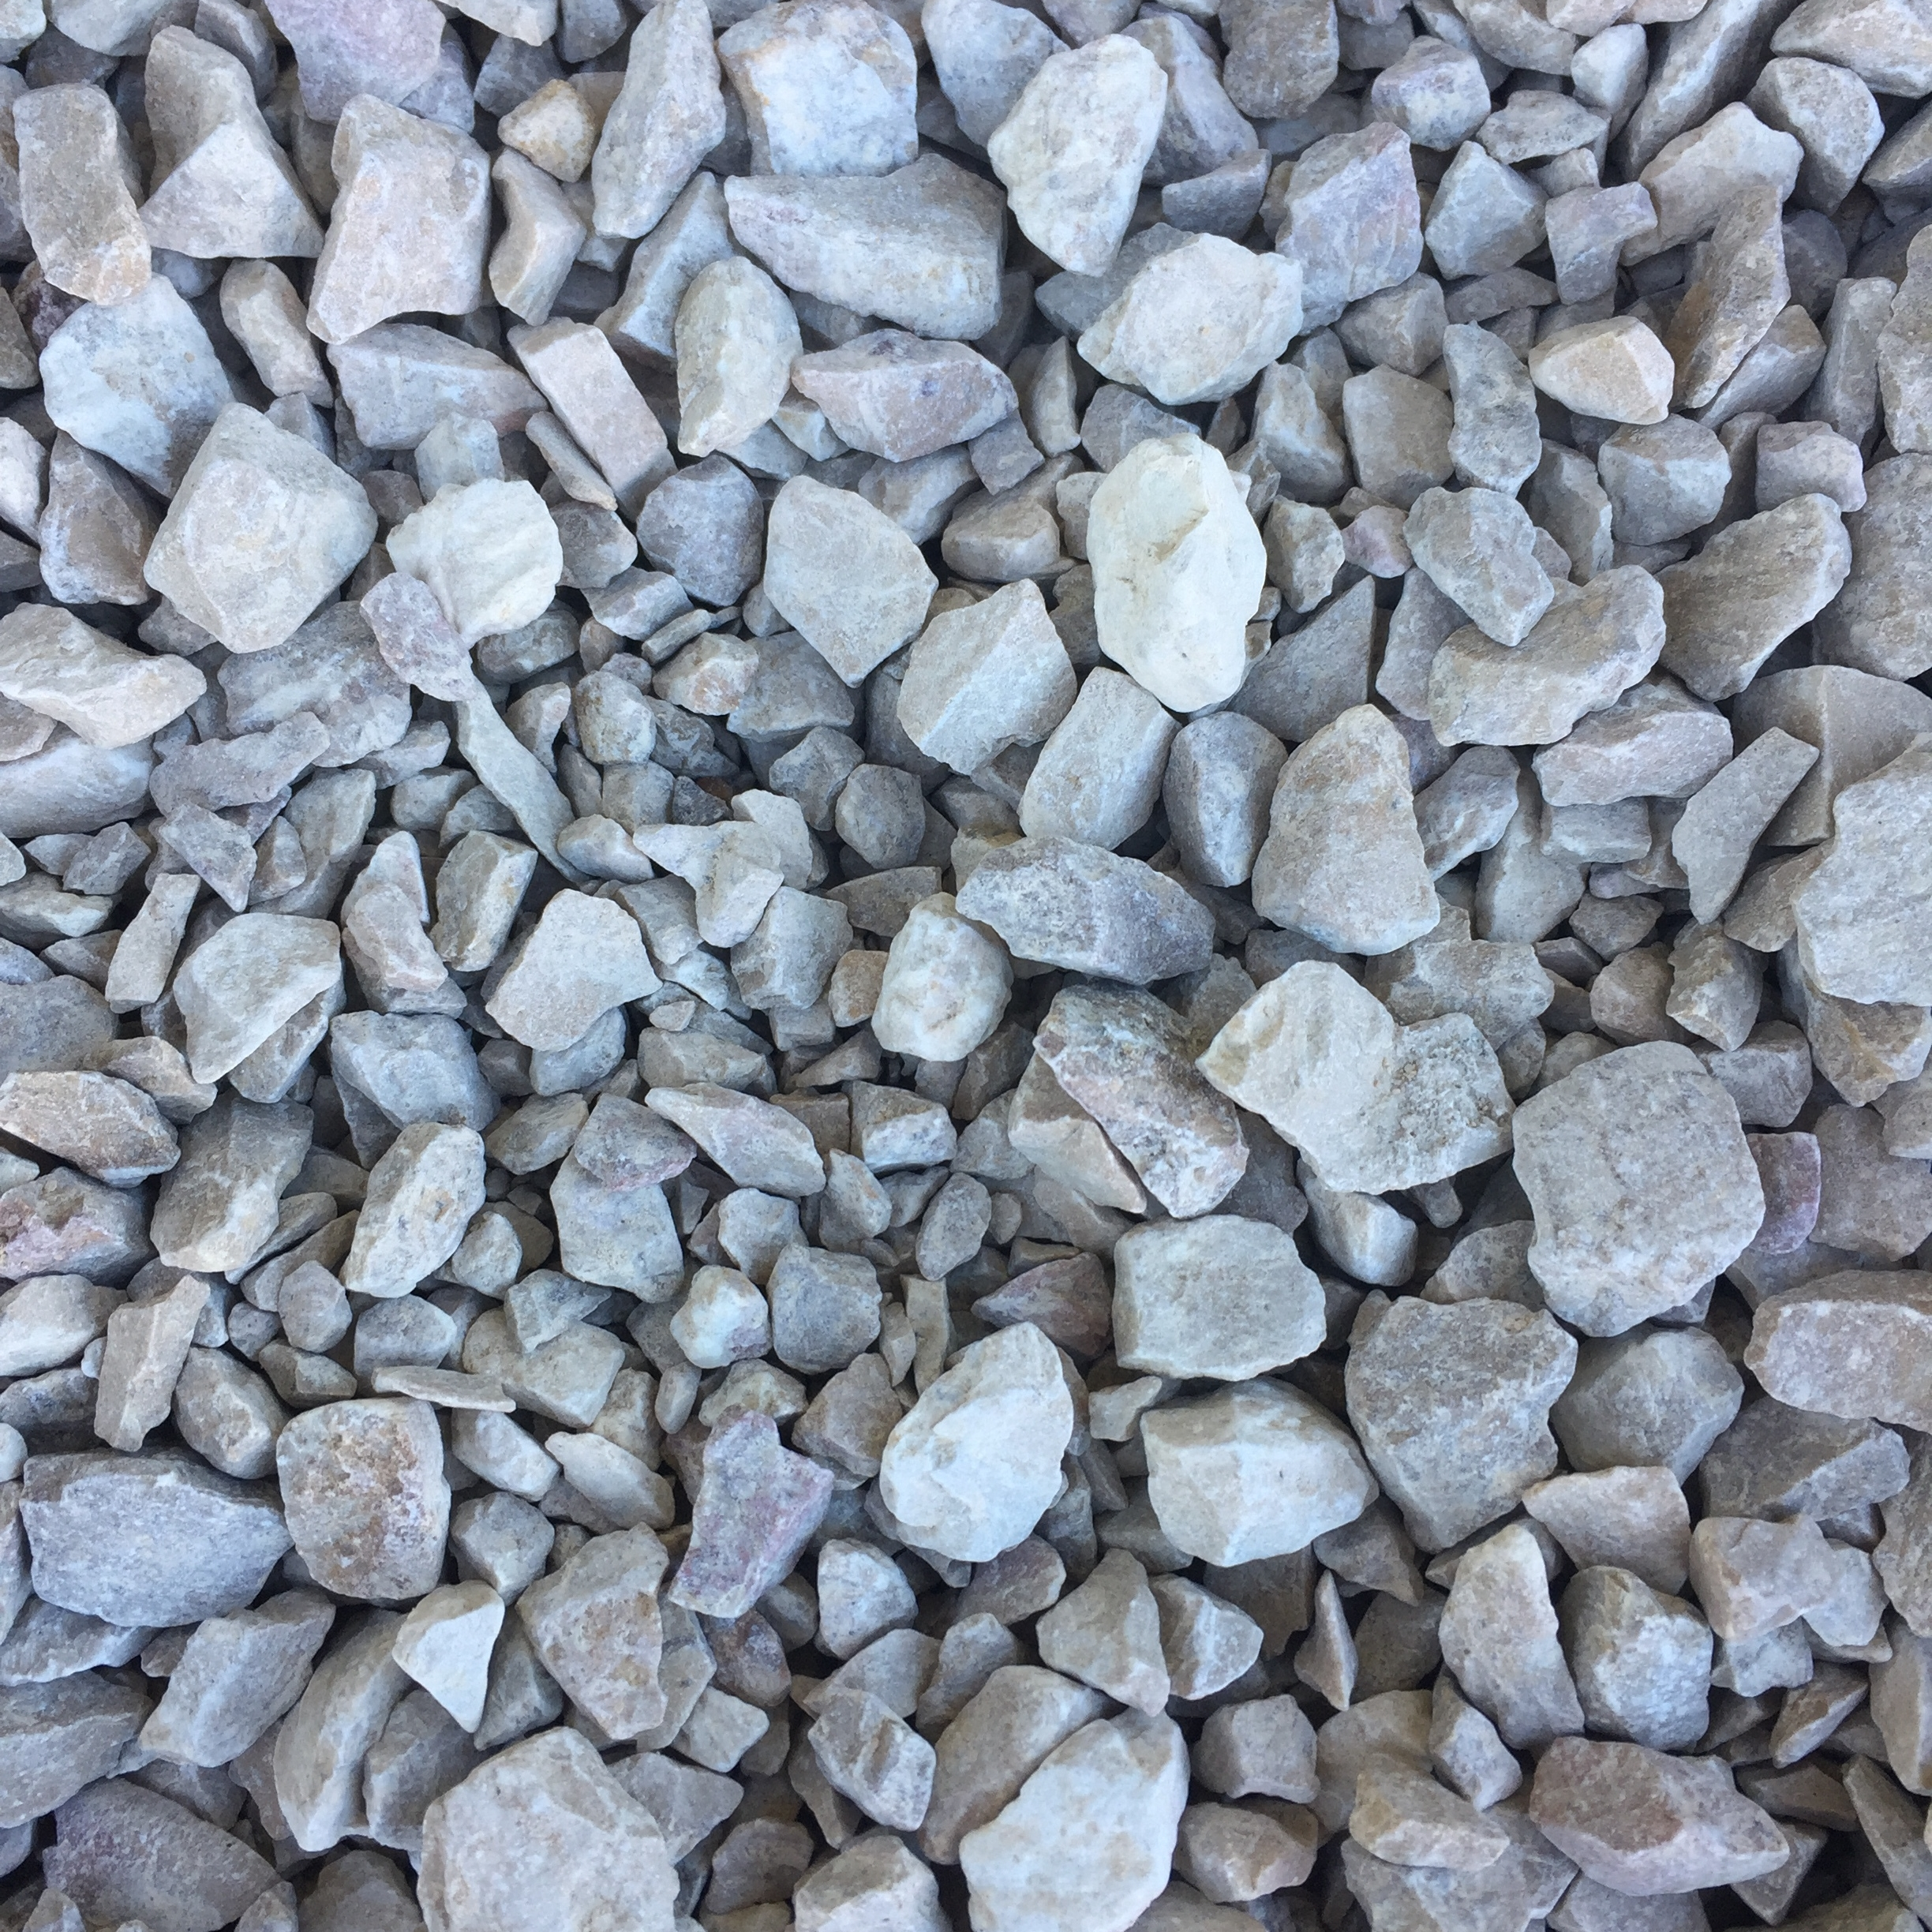 3/4 INCH Utility ROCK   Composition:  Type 57 Utility Rock  Applications:  A compactible rock that is best used as a driveway or pathway base, pipe embedment, or can also be used for landscaping applications.    $37.00 Per Cubic Yard